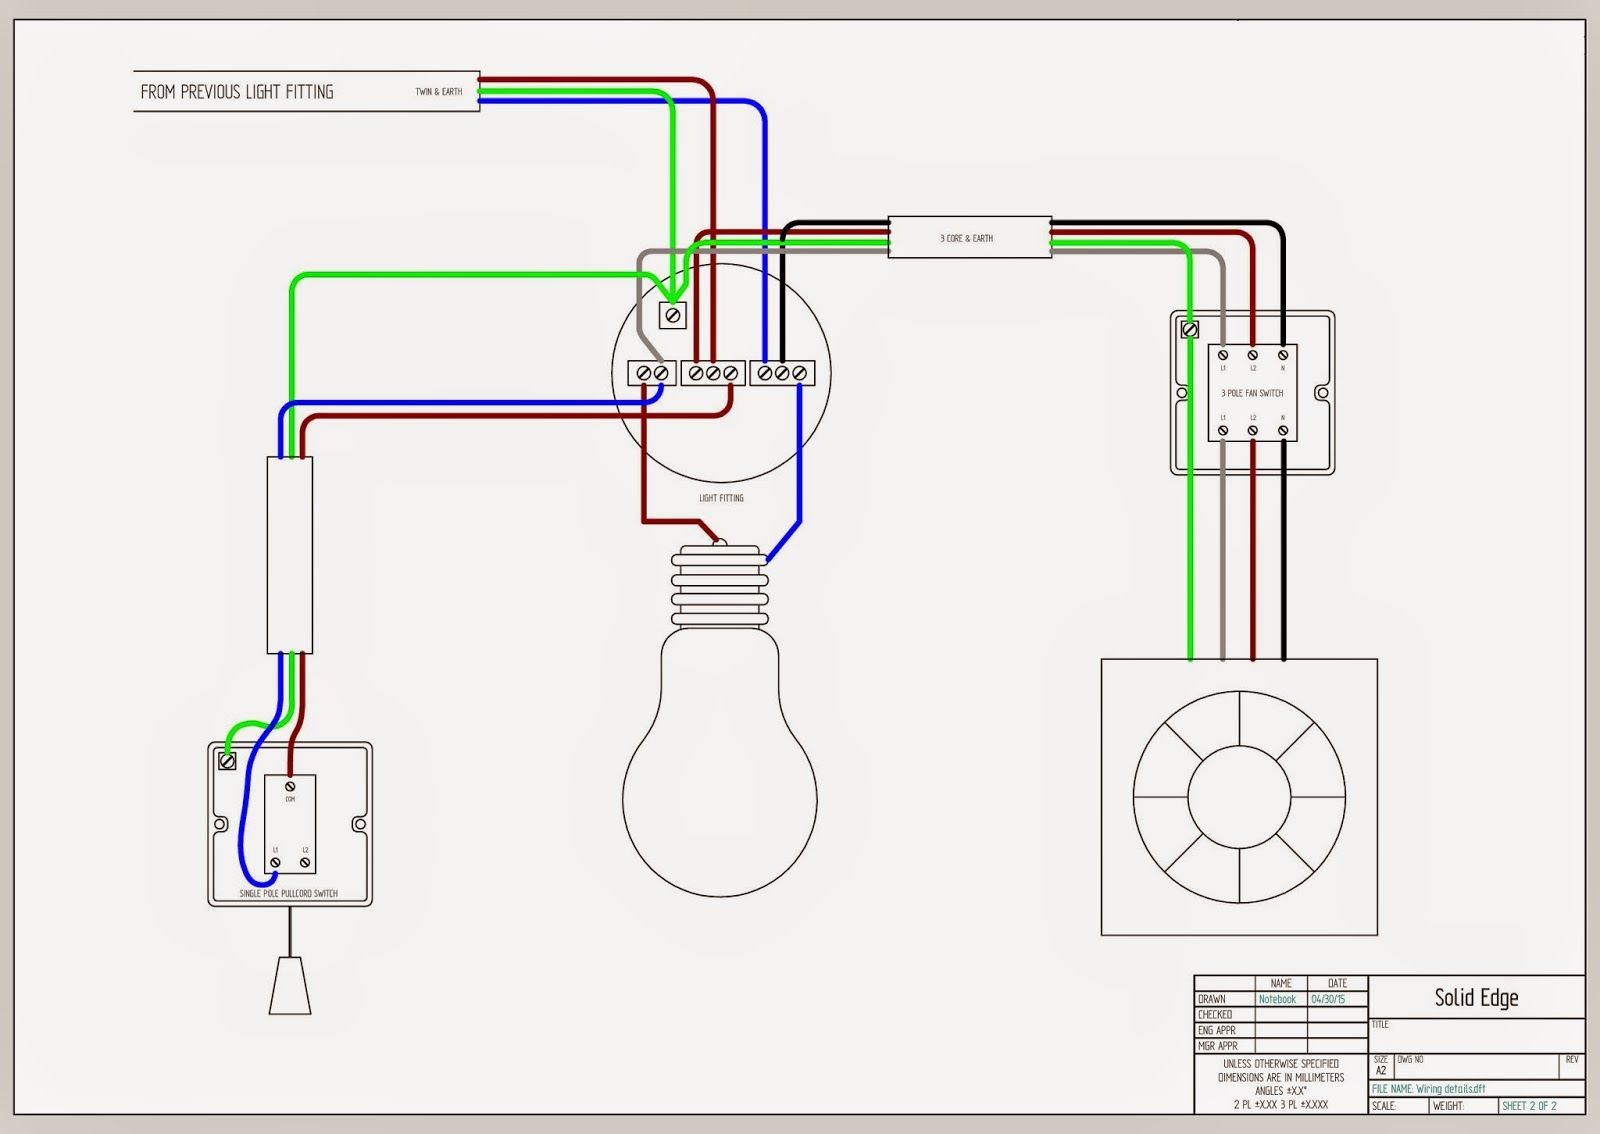 Wiring Diagram Exhaust Fan Switch : Latest posts under bathroom exhaust fan design